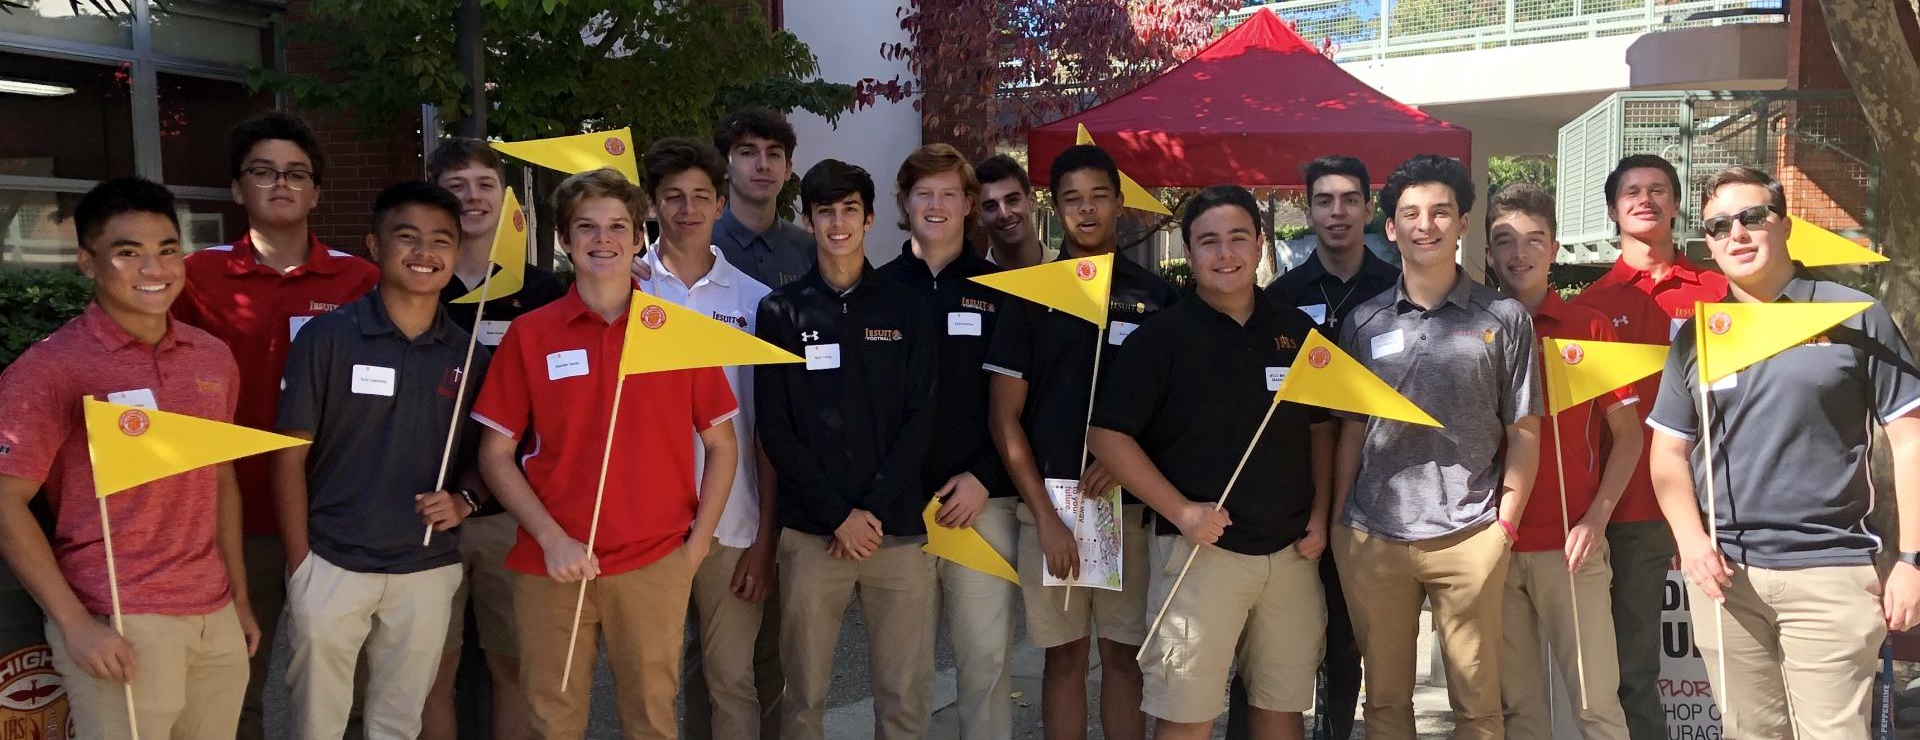 Group of student Open House tour guides with their bright yellow flags on poles.